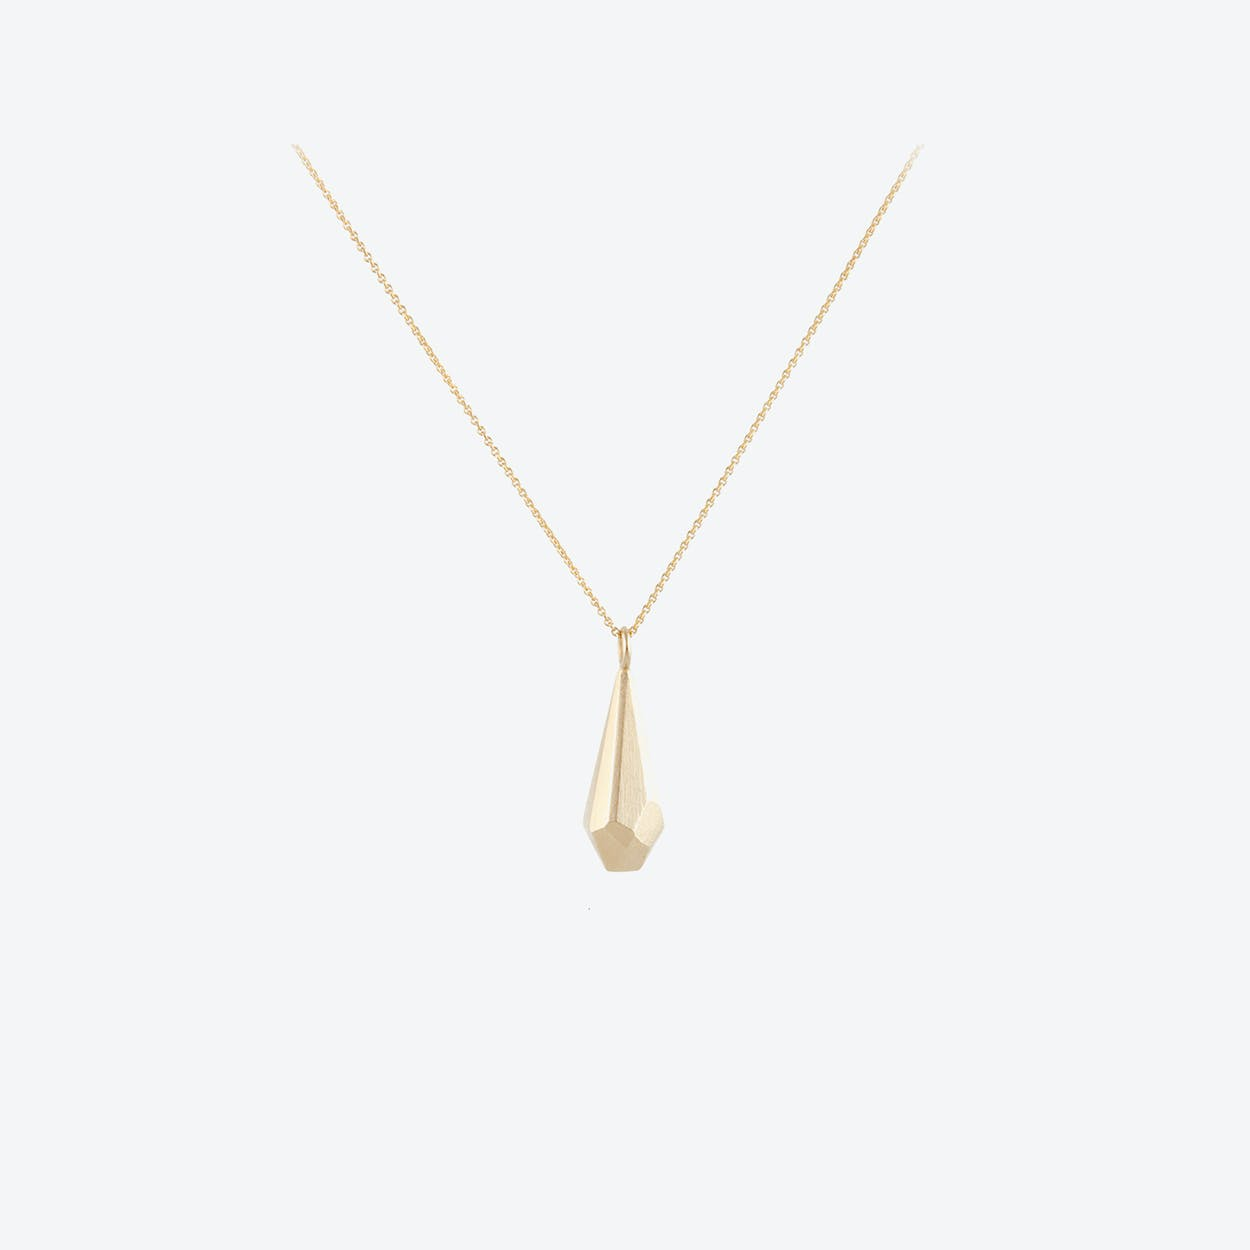 CRYSTAL Necklace in 14kt Gold